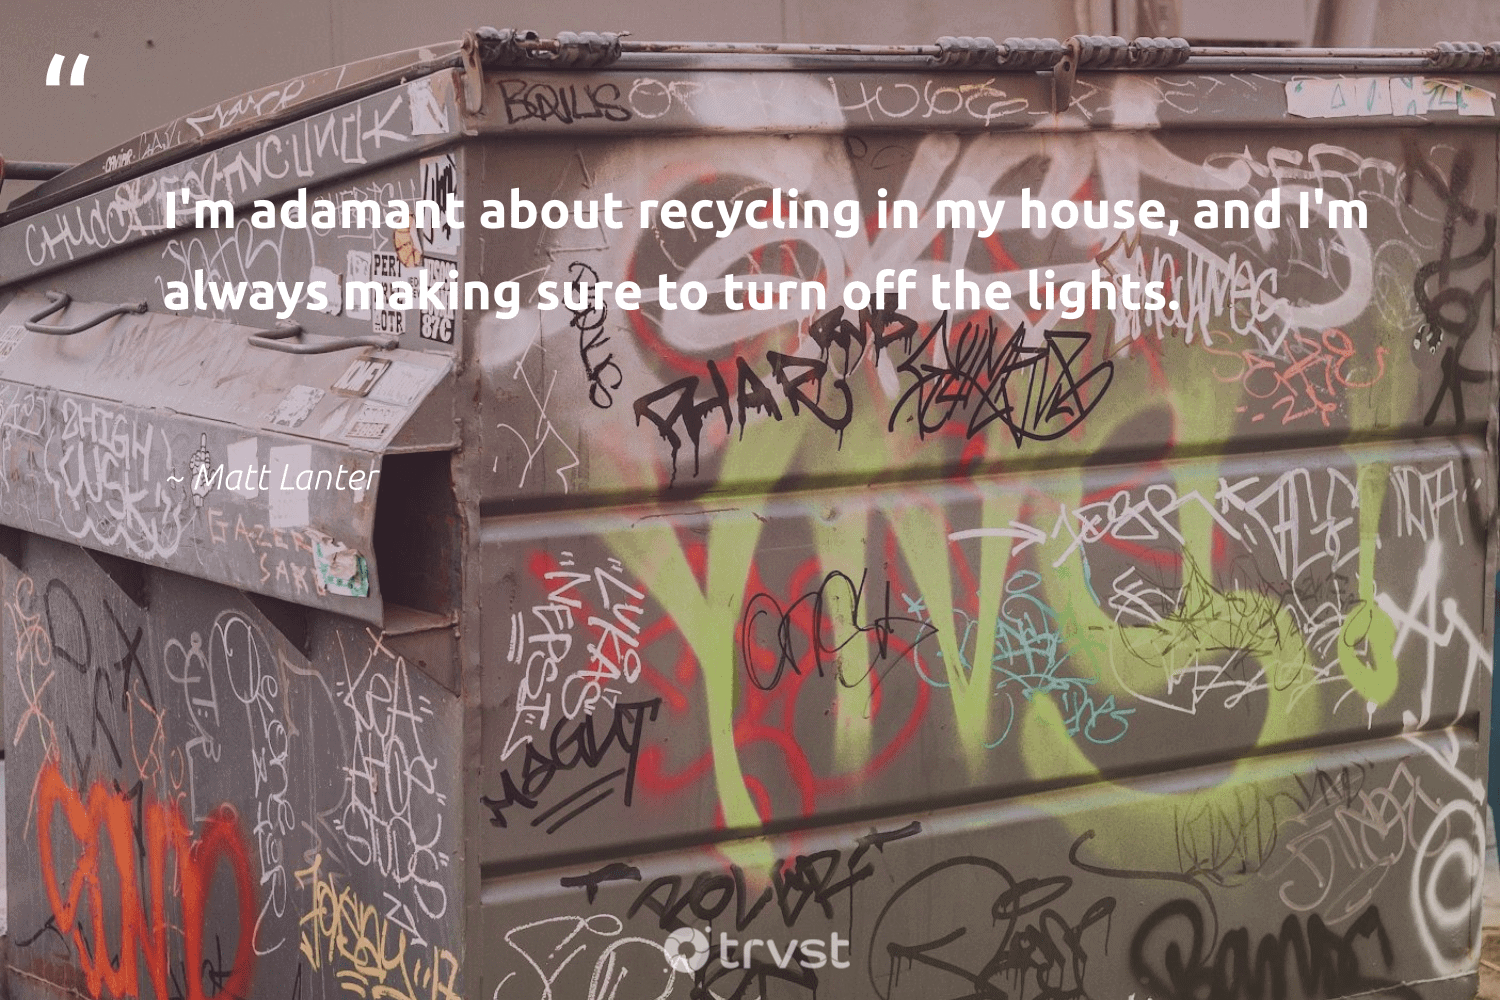 """""""I'm adamant about recycling in my house, and I'm always making sure to turn off the lights.""""  - Matt Lanter #trvst #quotes #recycling #repair #environment #ethical #changetheworld #reduce #ecoactivism #wecandobetter #socialchange #upcycling"""